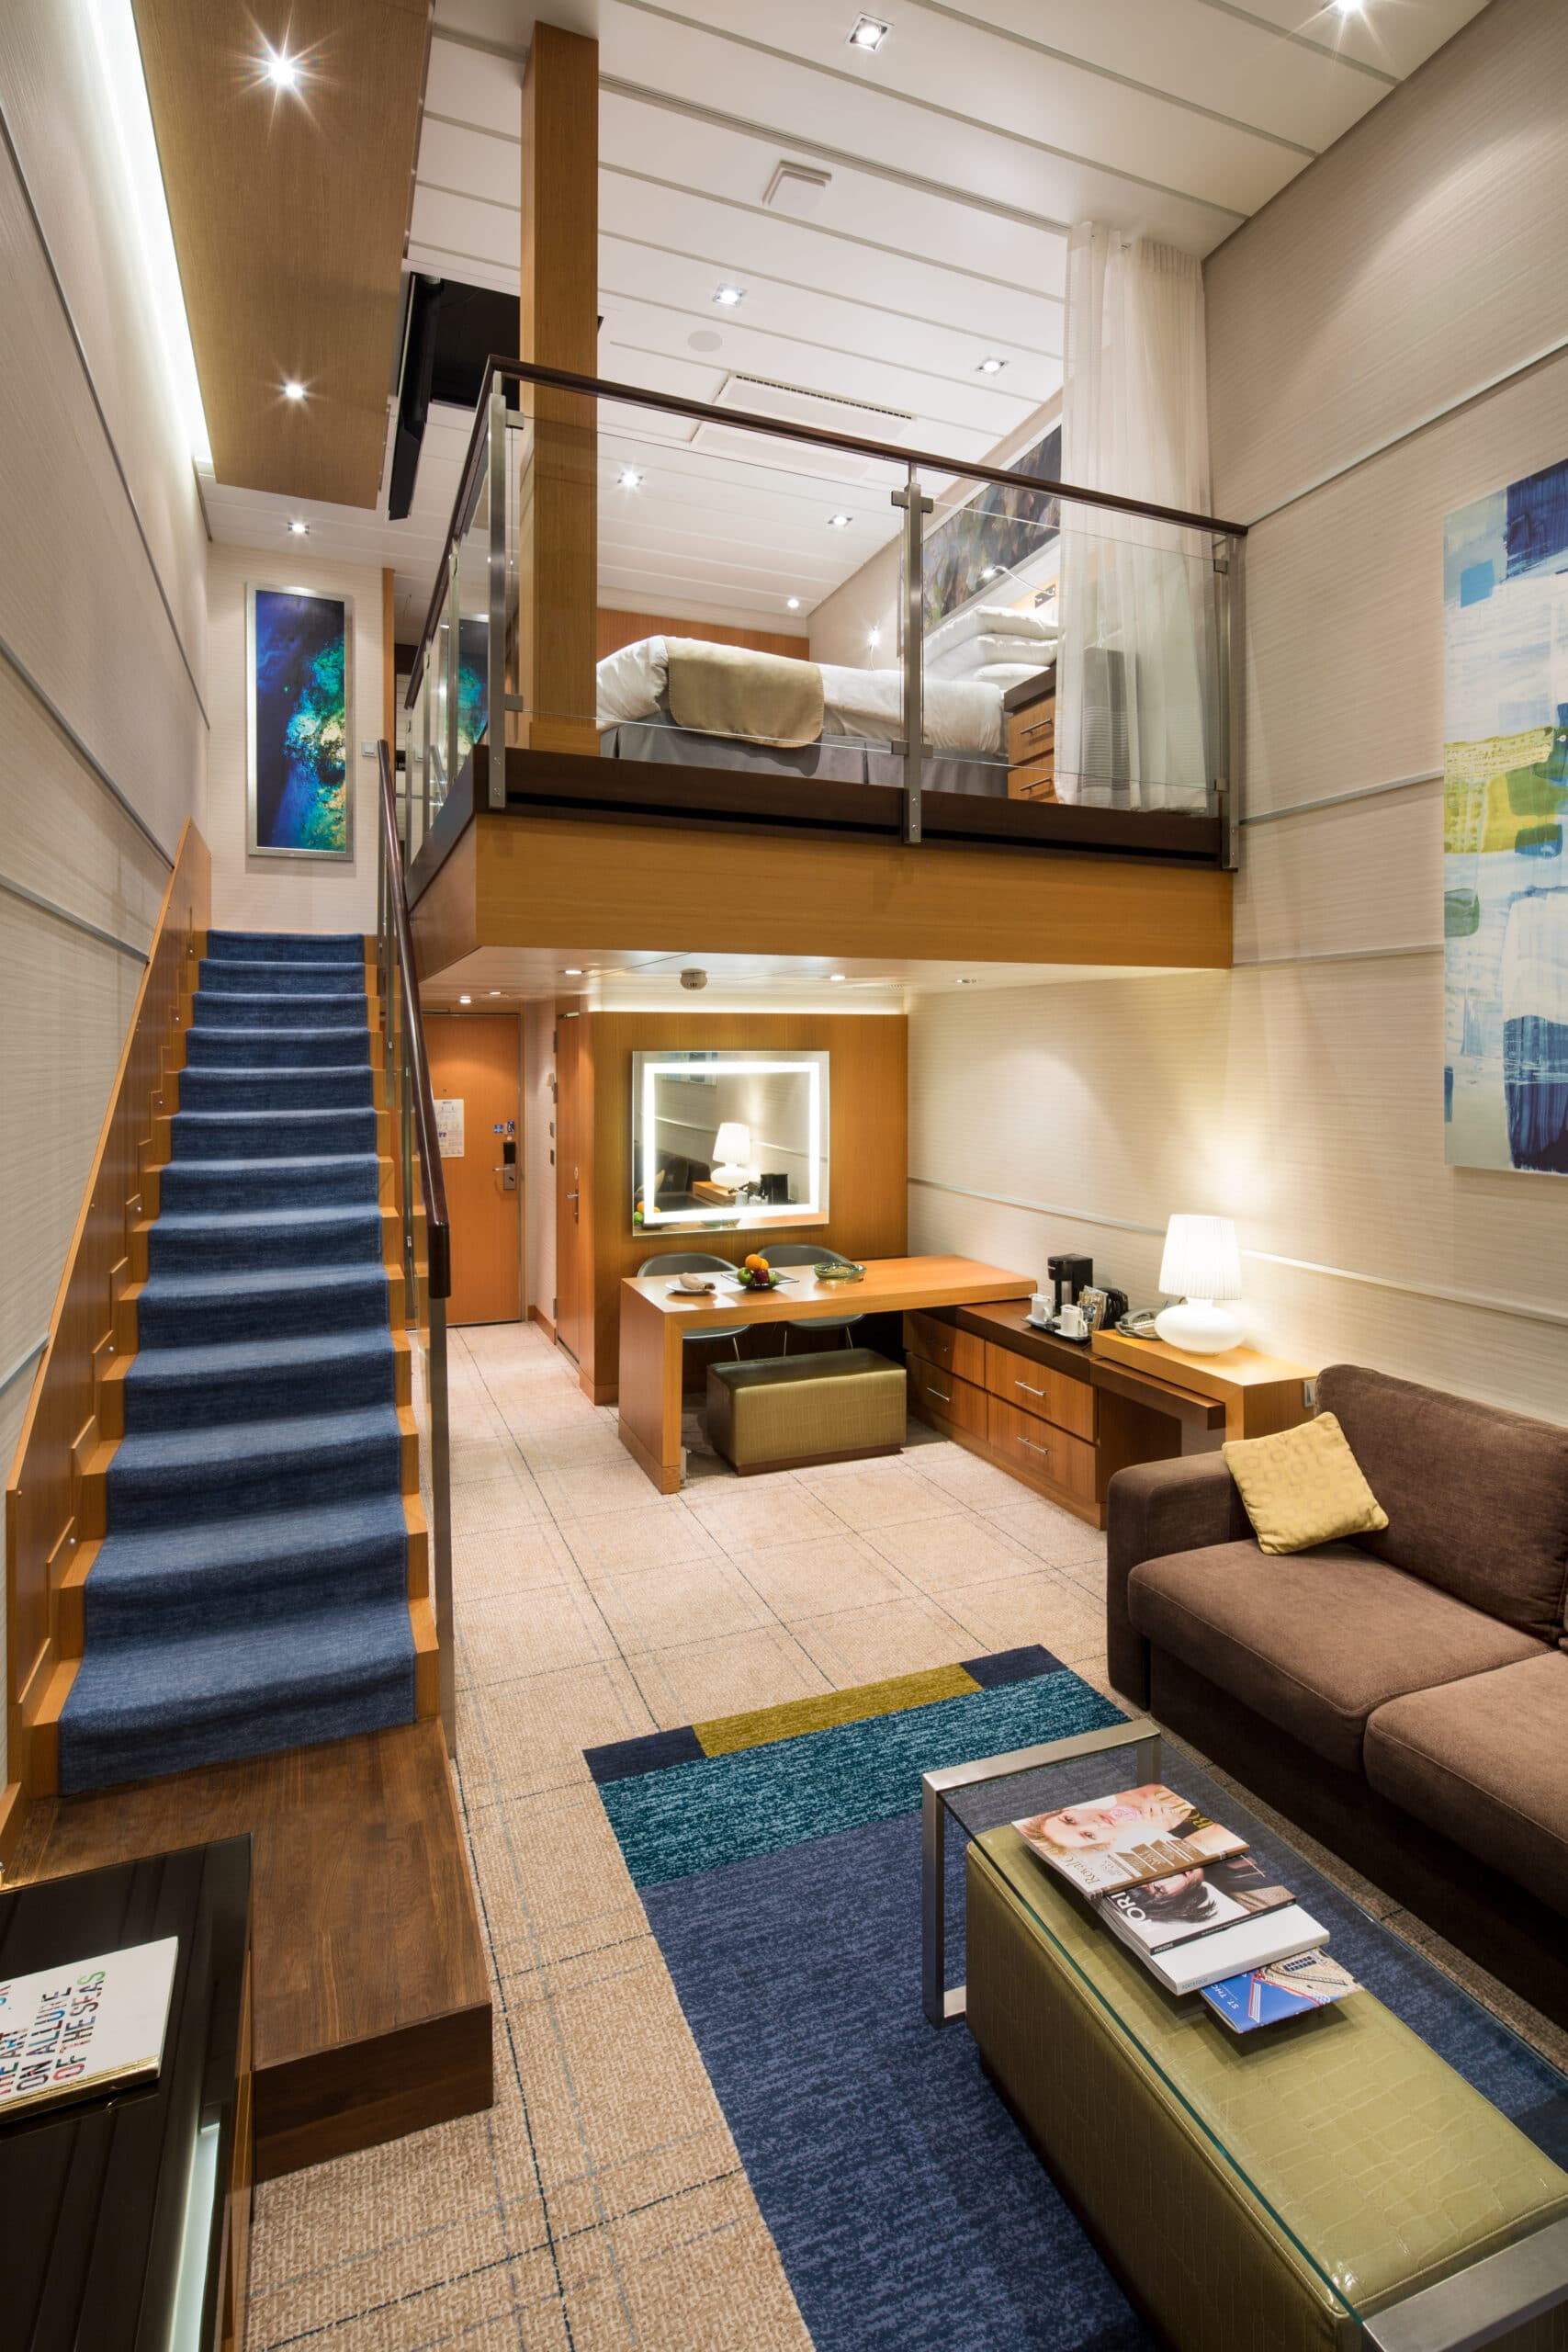 Royal-Caribbean-International-Allure-of-the-Seas-Oasis-of-the-seas-schip-cruiseschip-categorie-L1-Crown-Loft-Suites